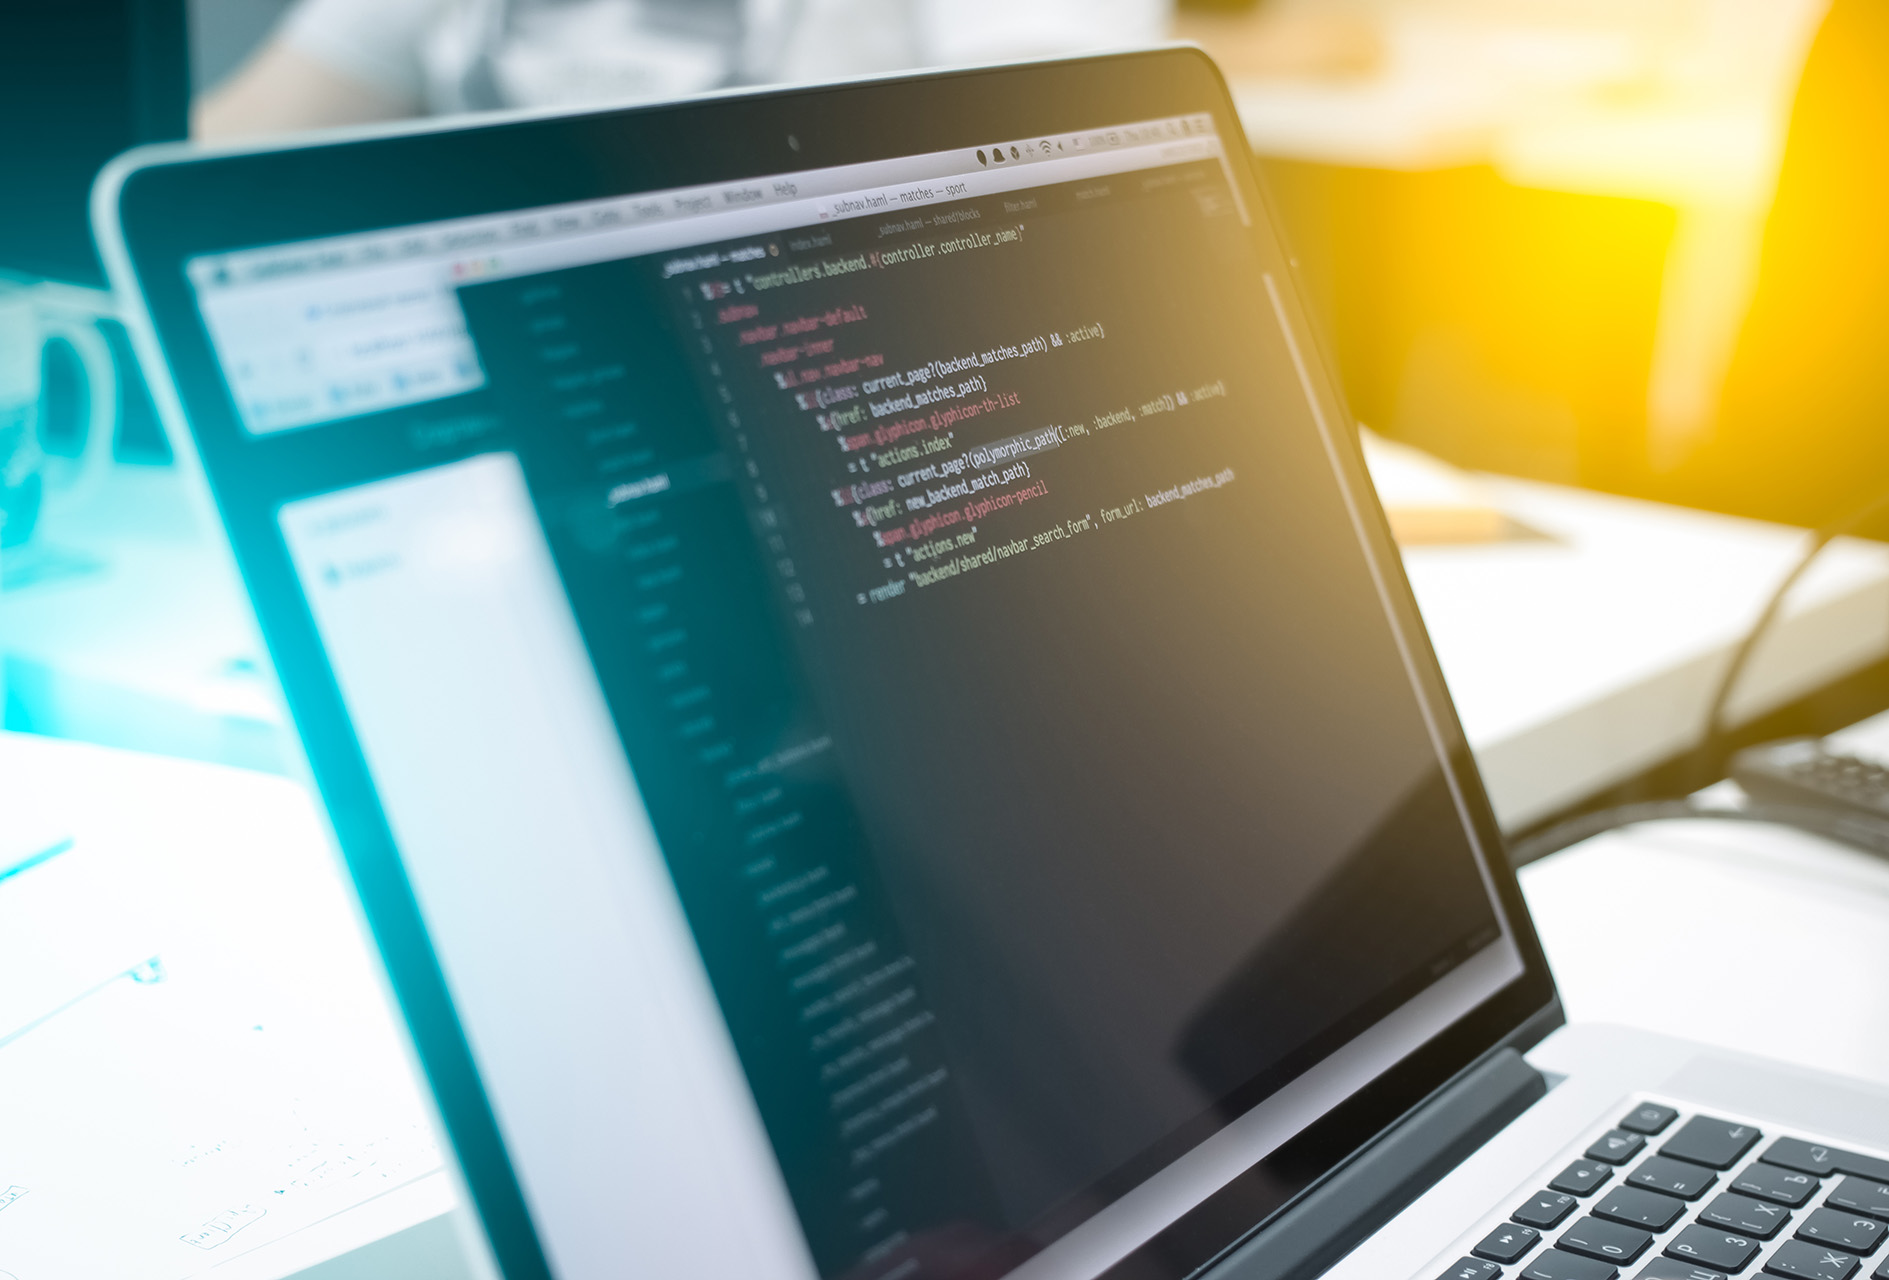 What to learn next as a front-end developer